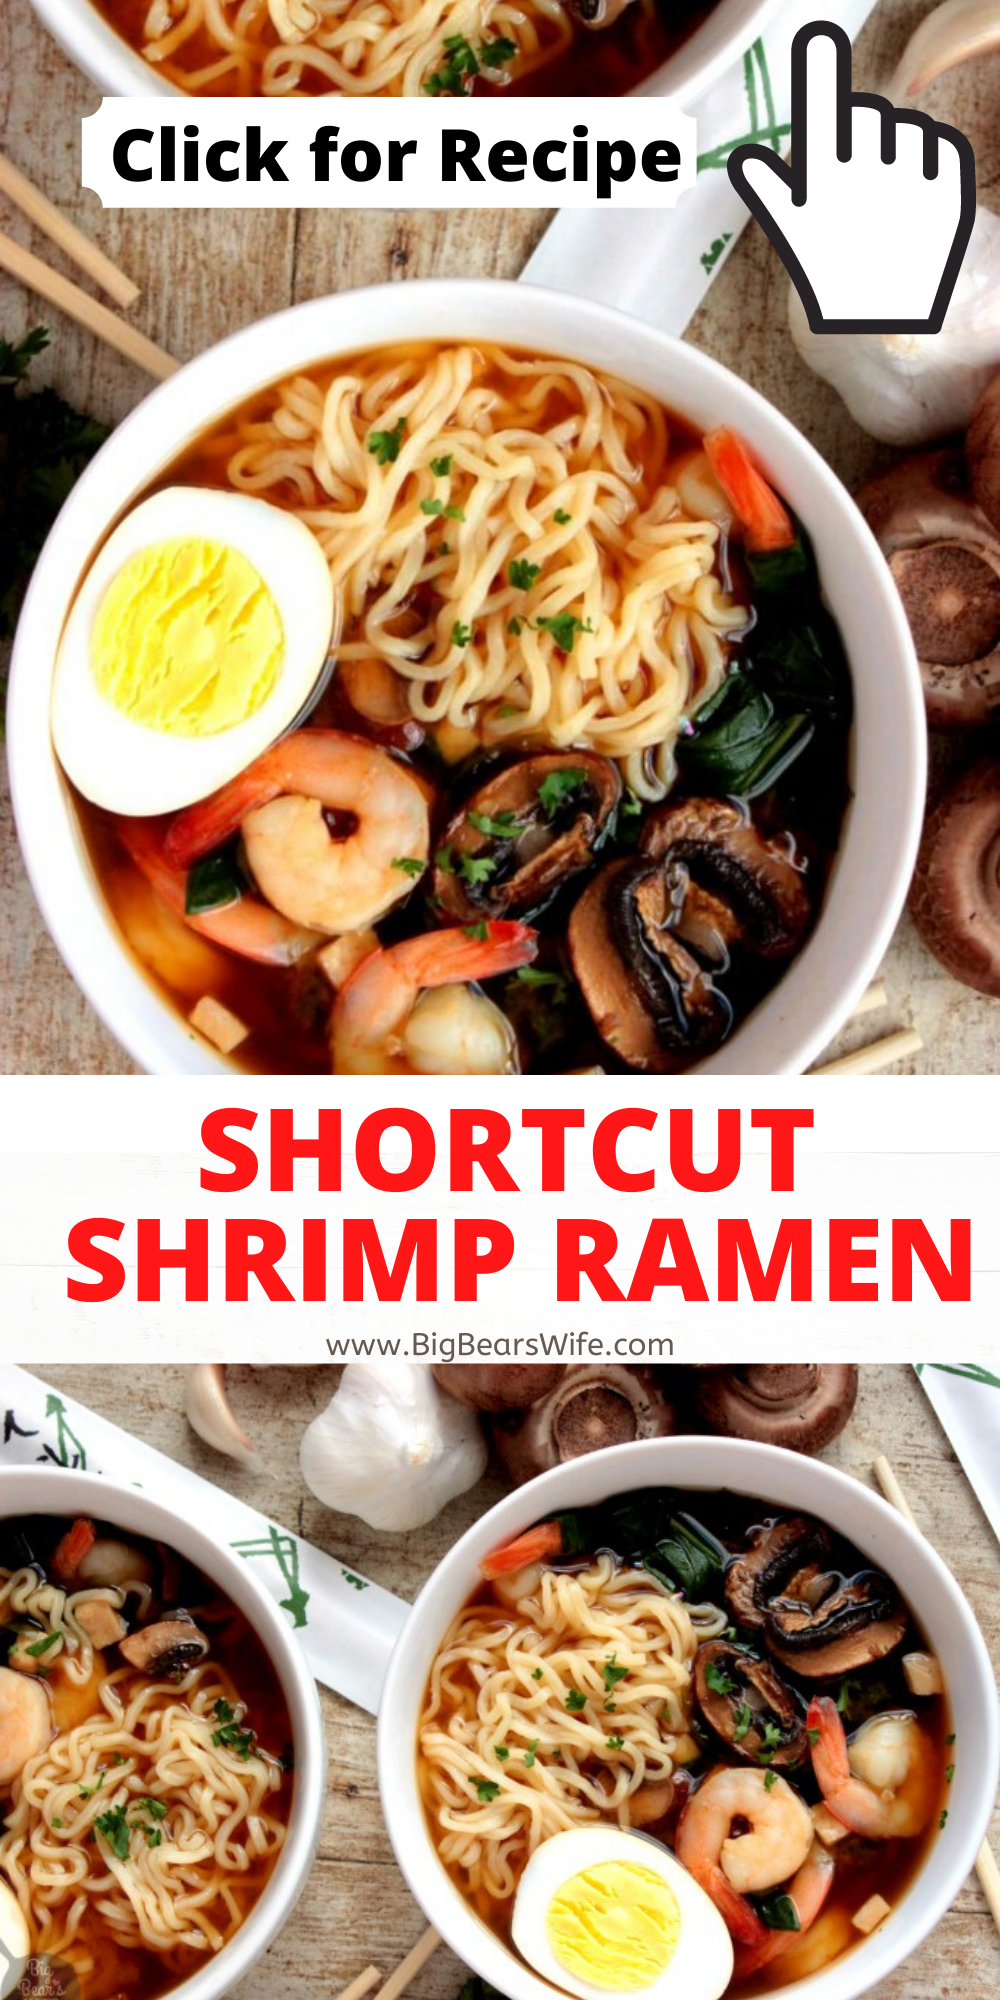 This Shortcut Shrimp Ramen is my favorite way to recreate ramen at home! The flavor is so good and in about 30 minutes you'll have delicious ramen. via @bigbearswife